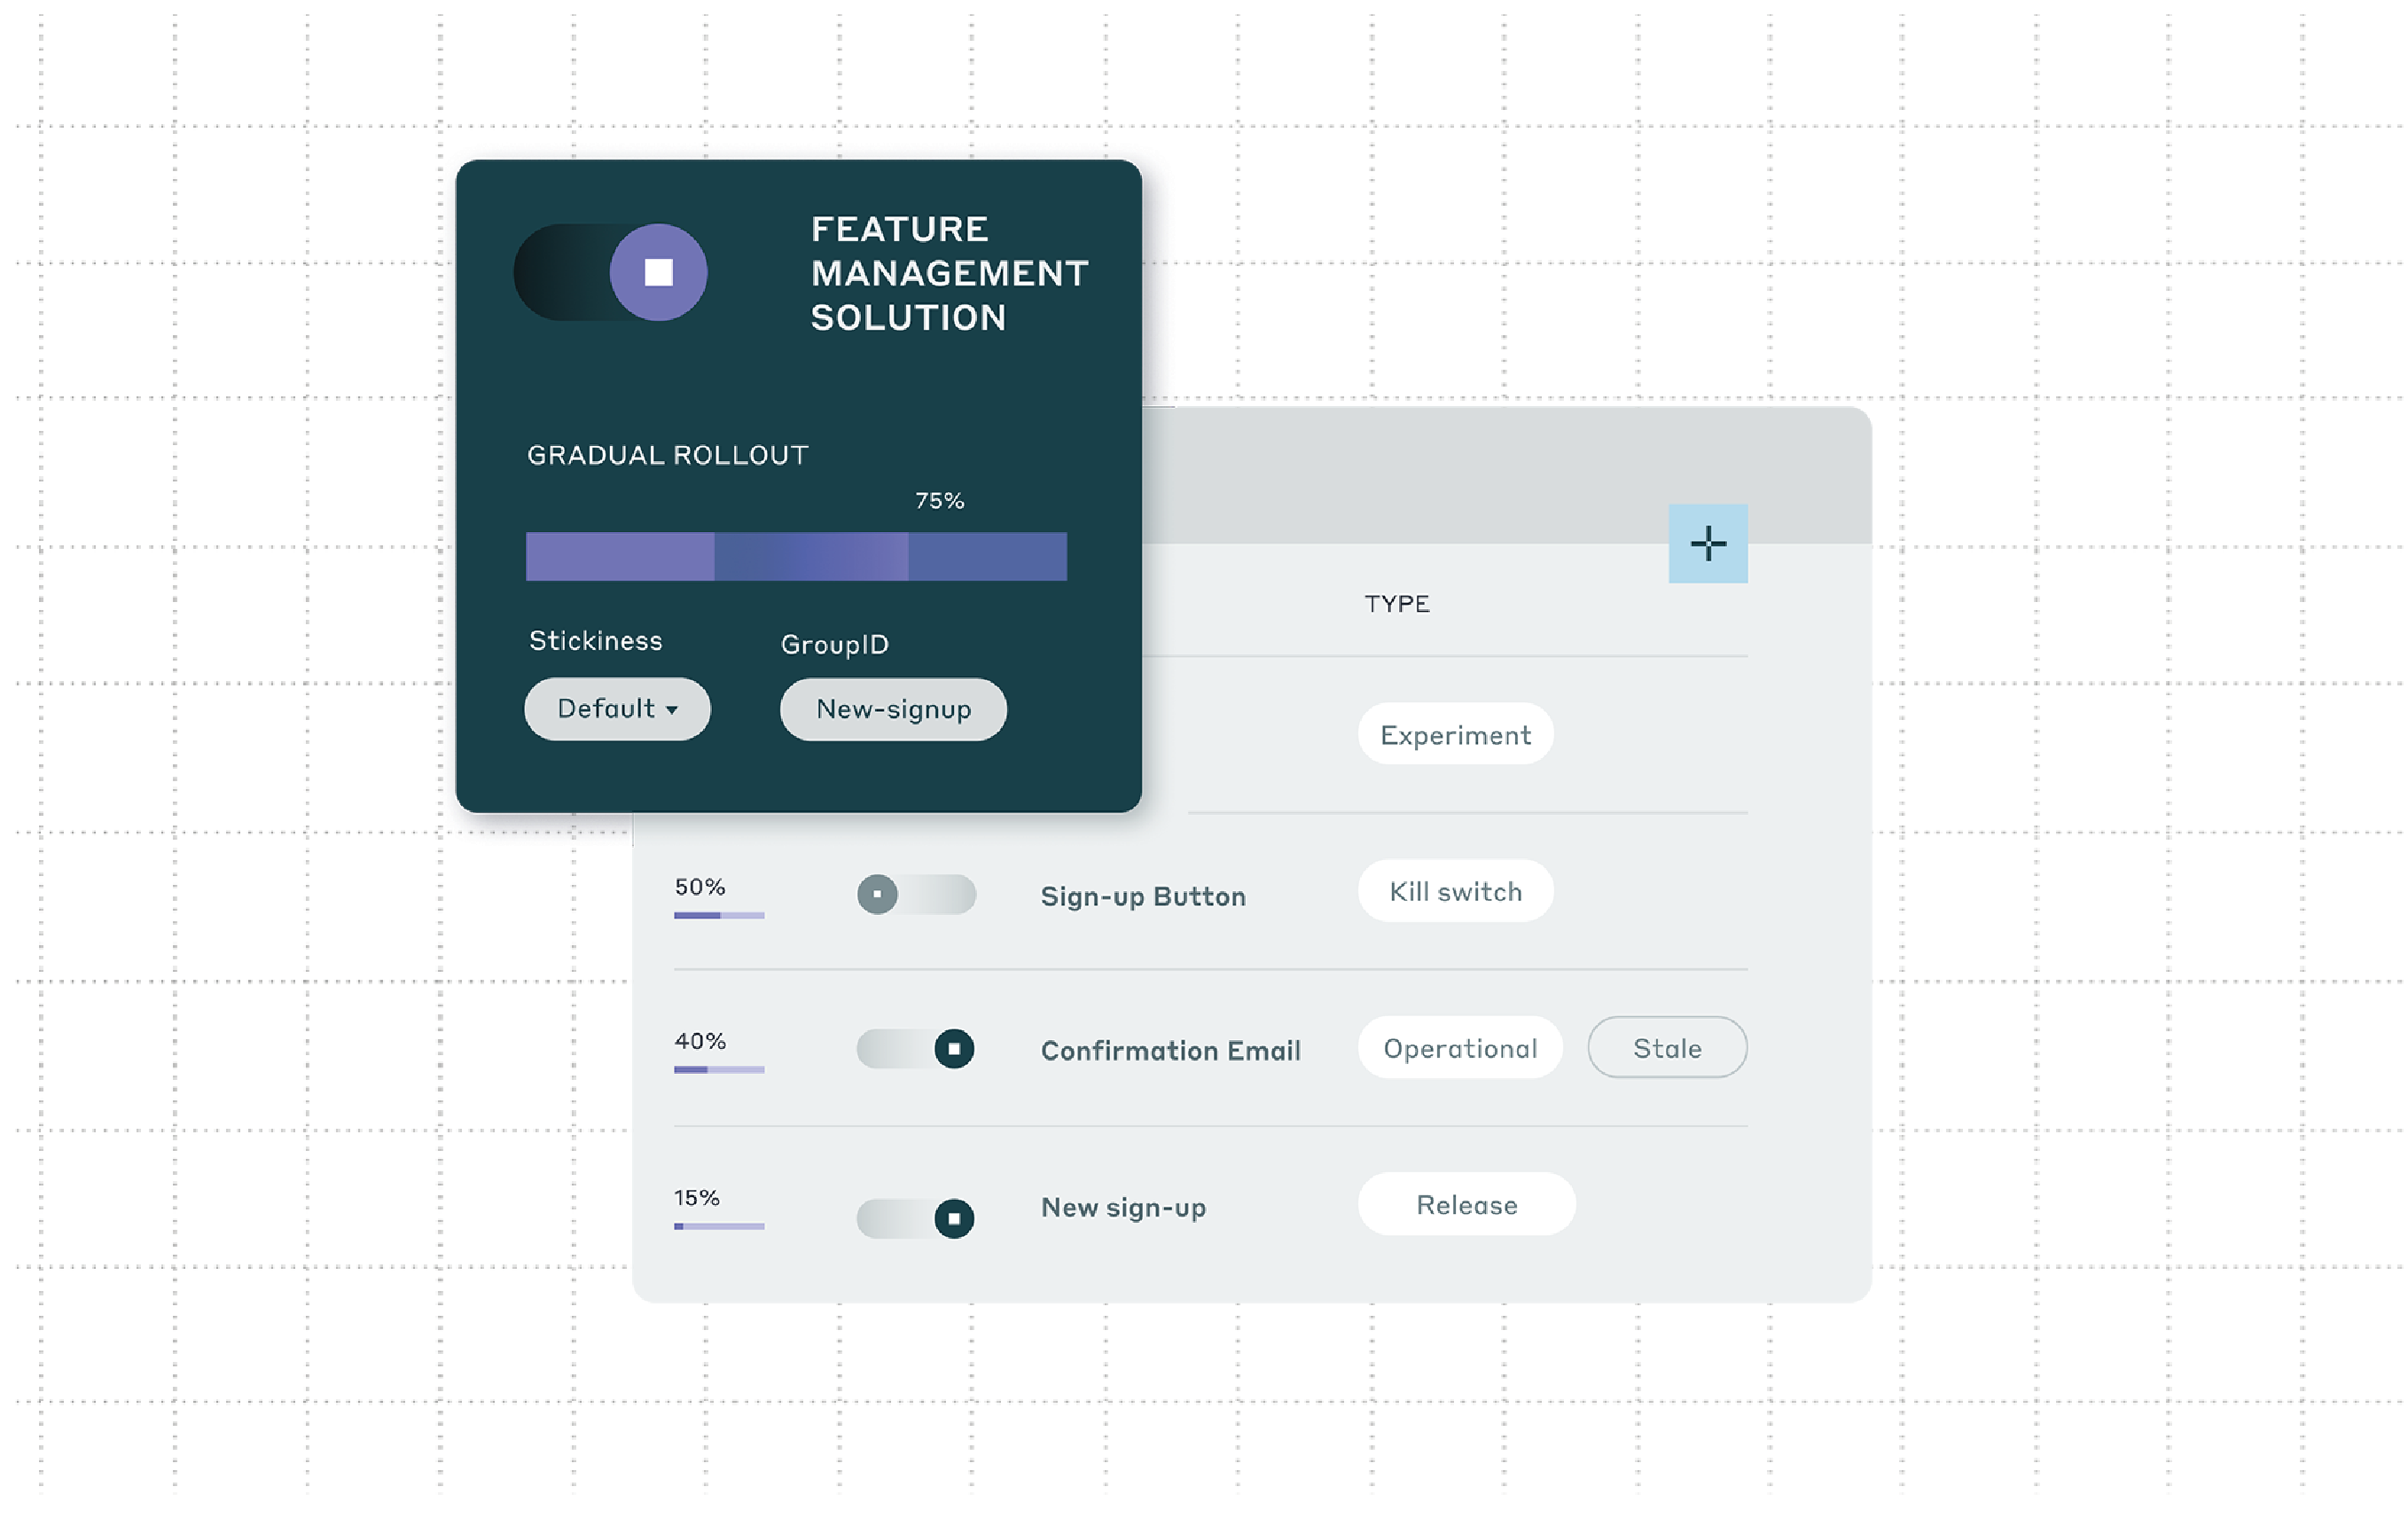 Illustration of feature management solution